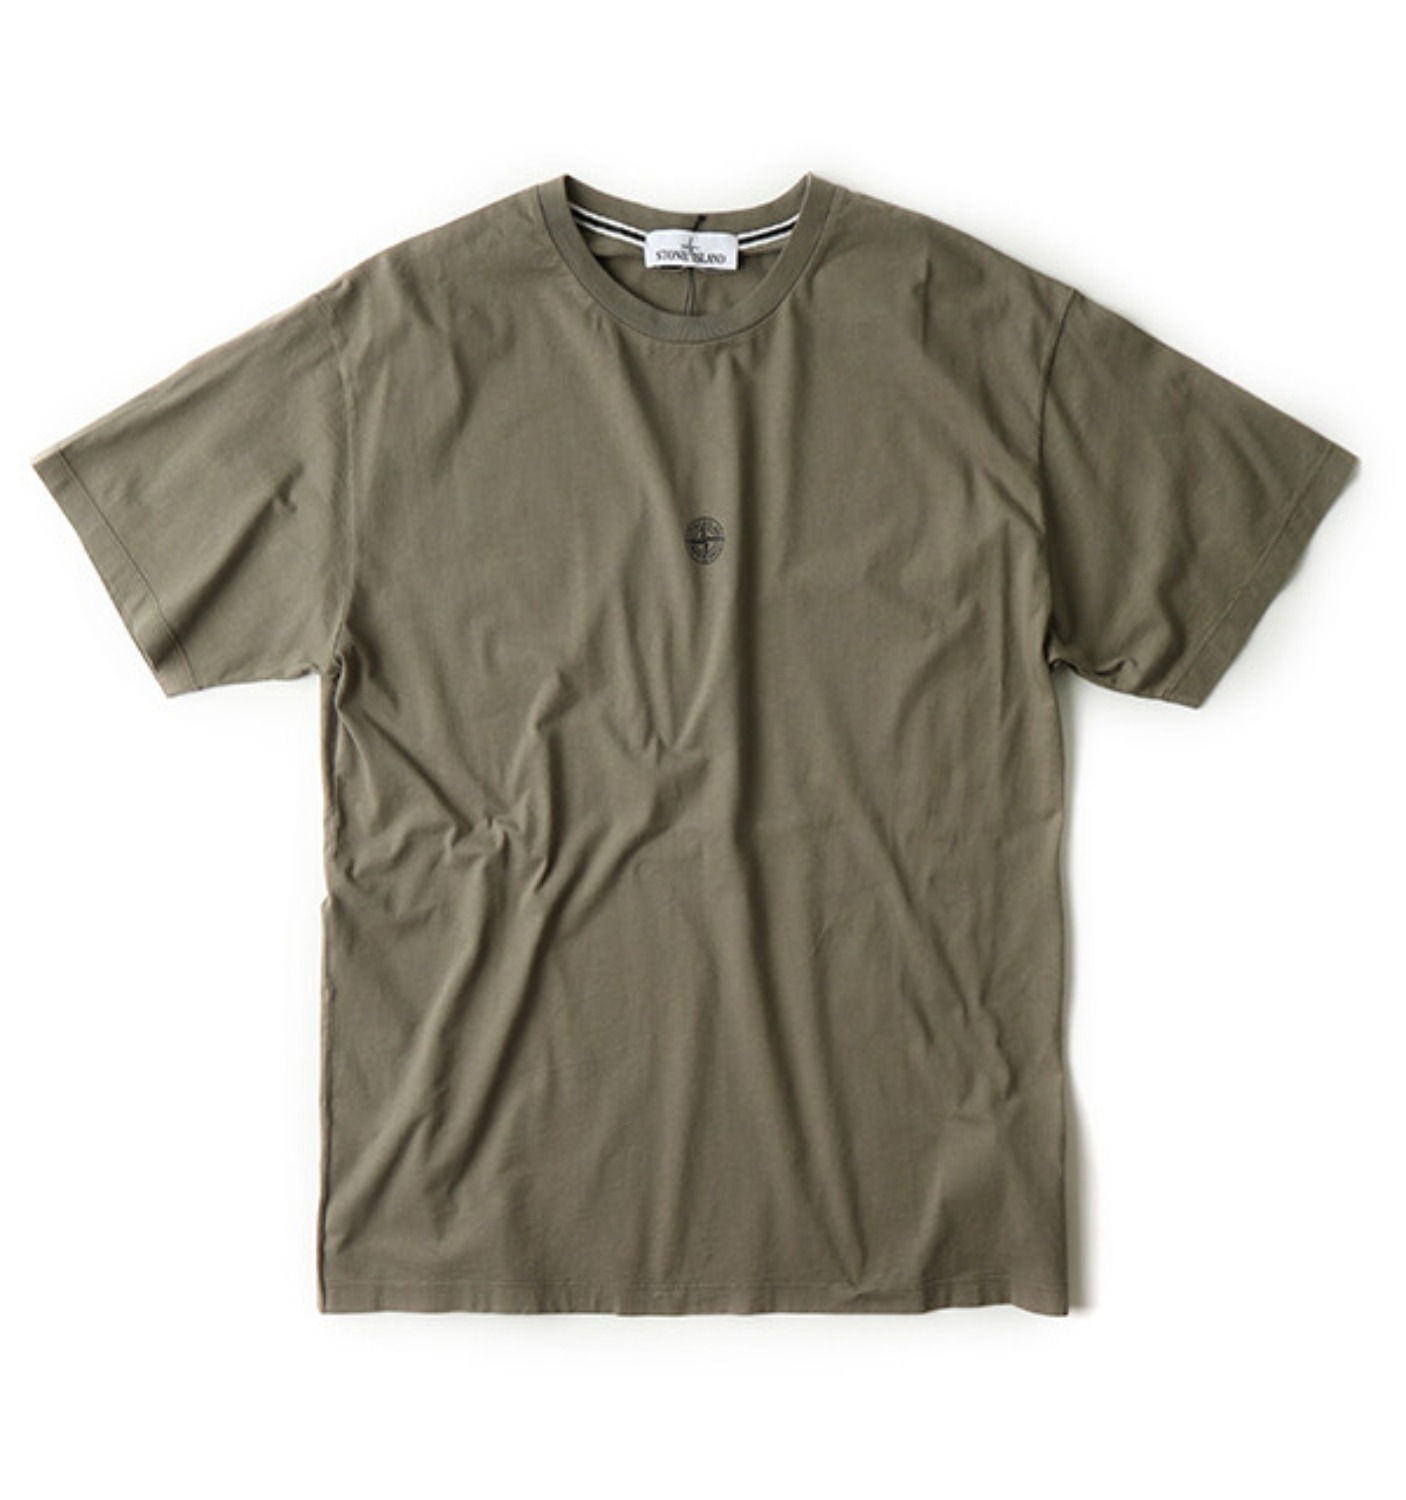 BACK REFLECTIVE PRINT T MILITARY (86K2S85)